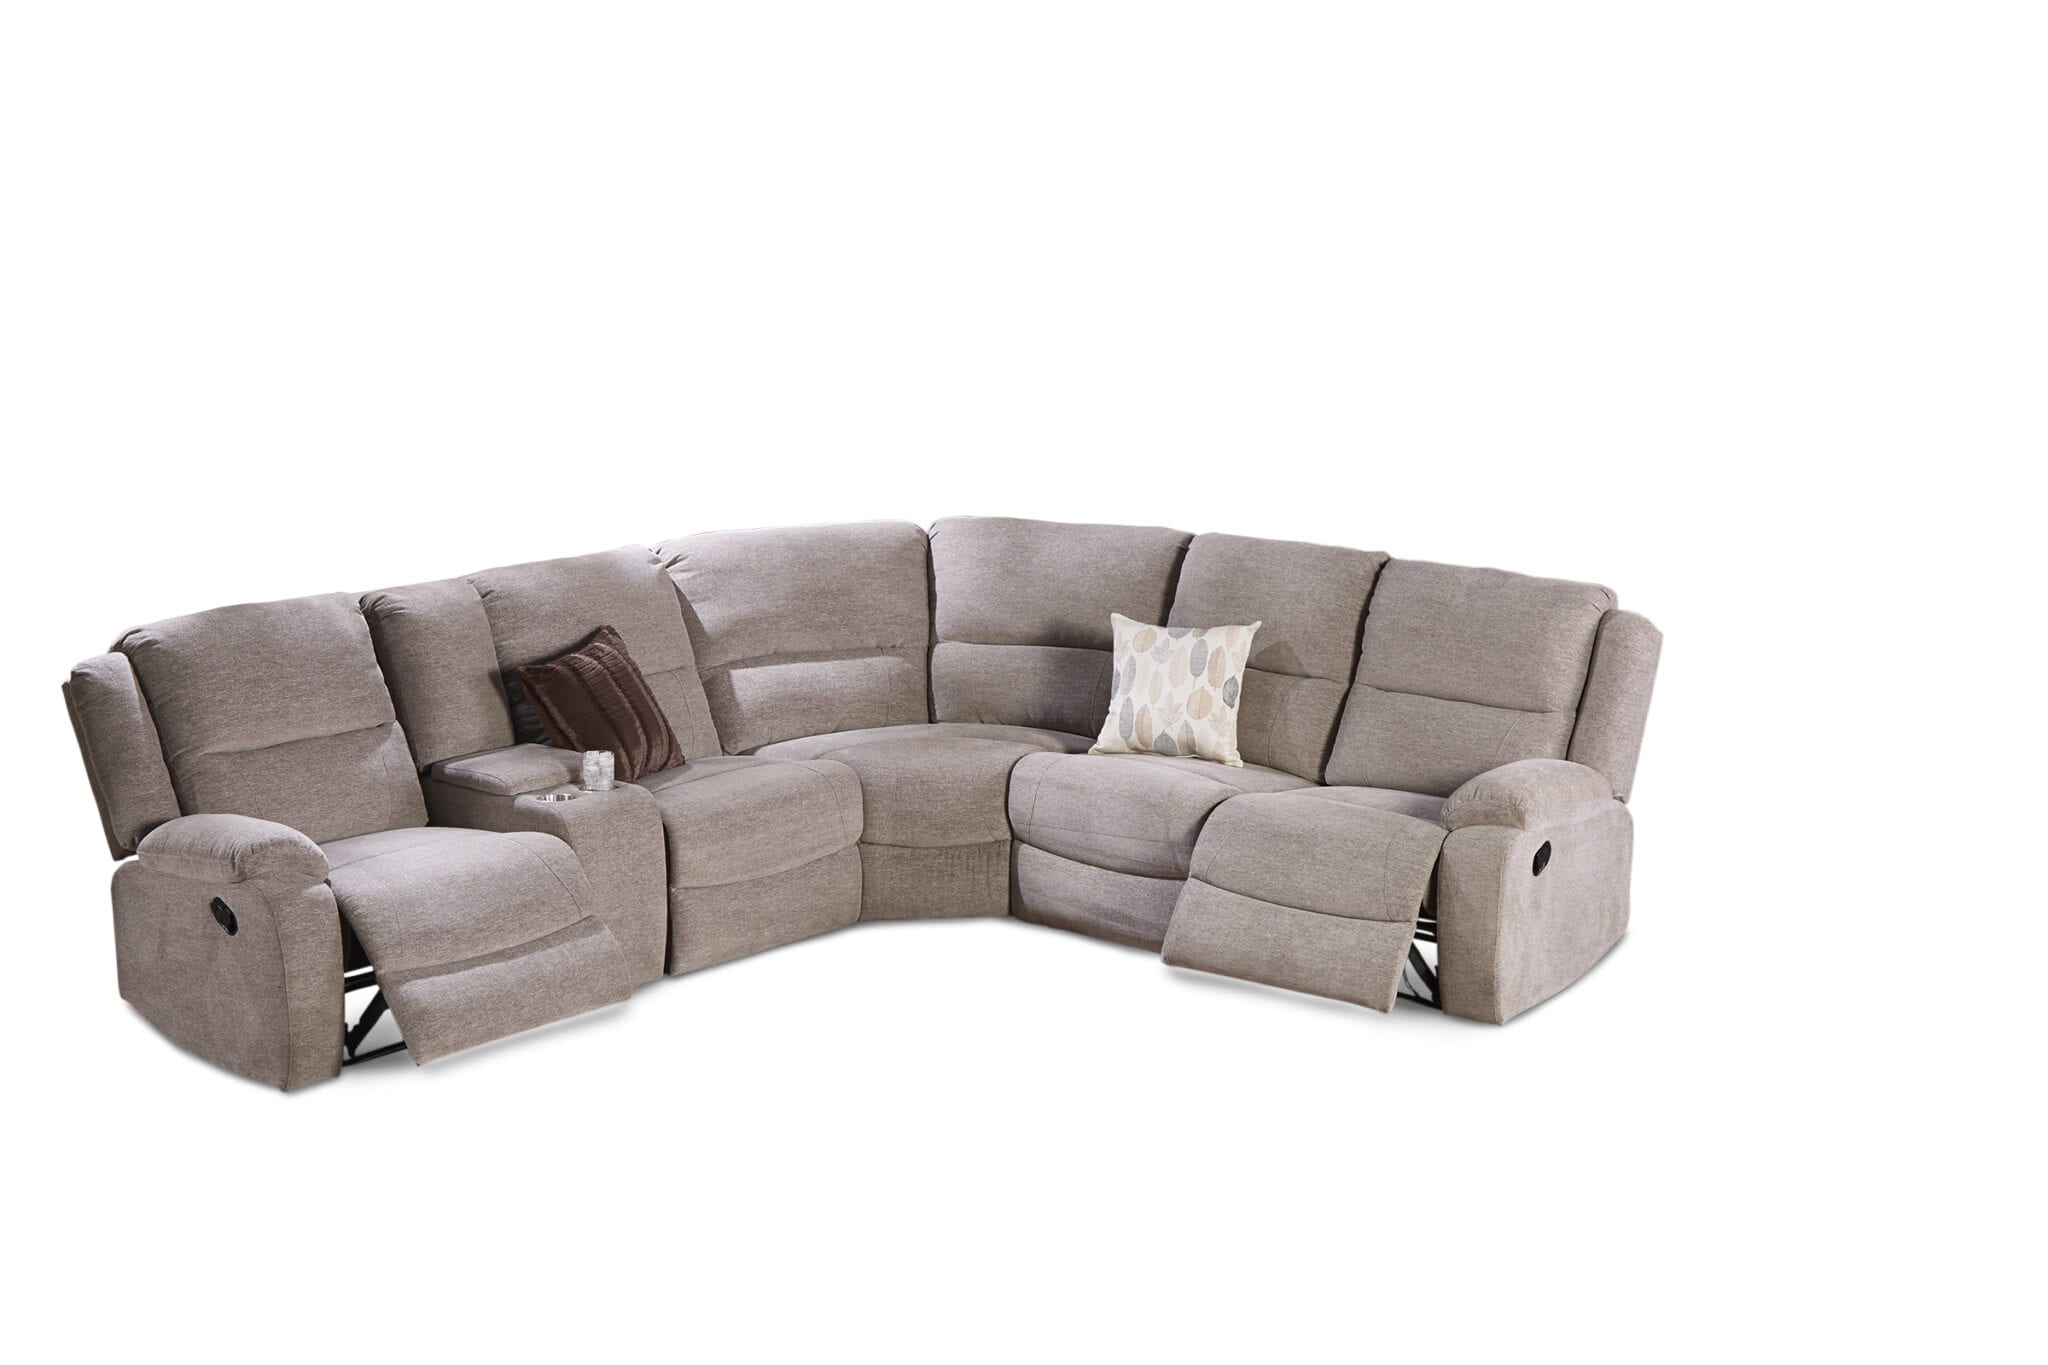 Fred Meyer Truckload Furniture Event Couches Under 300 5 Pc Dining Set 14399 Amp More